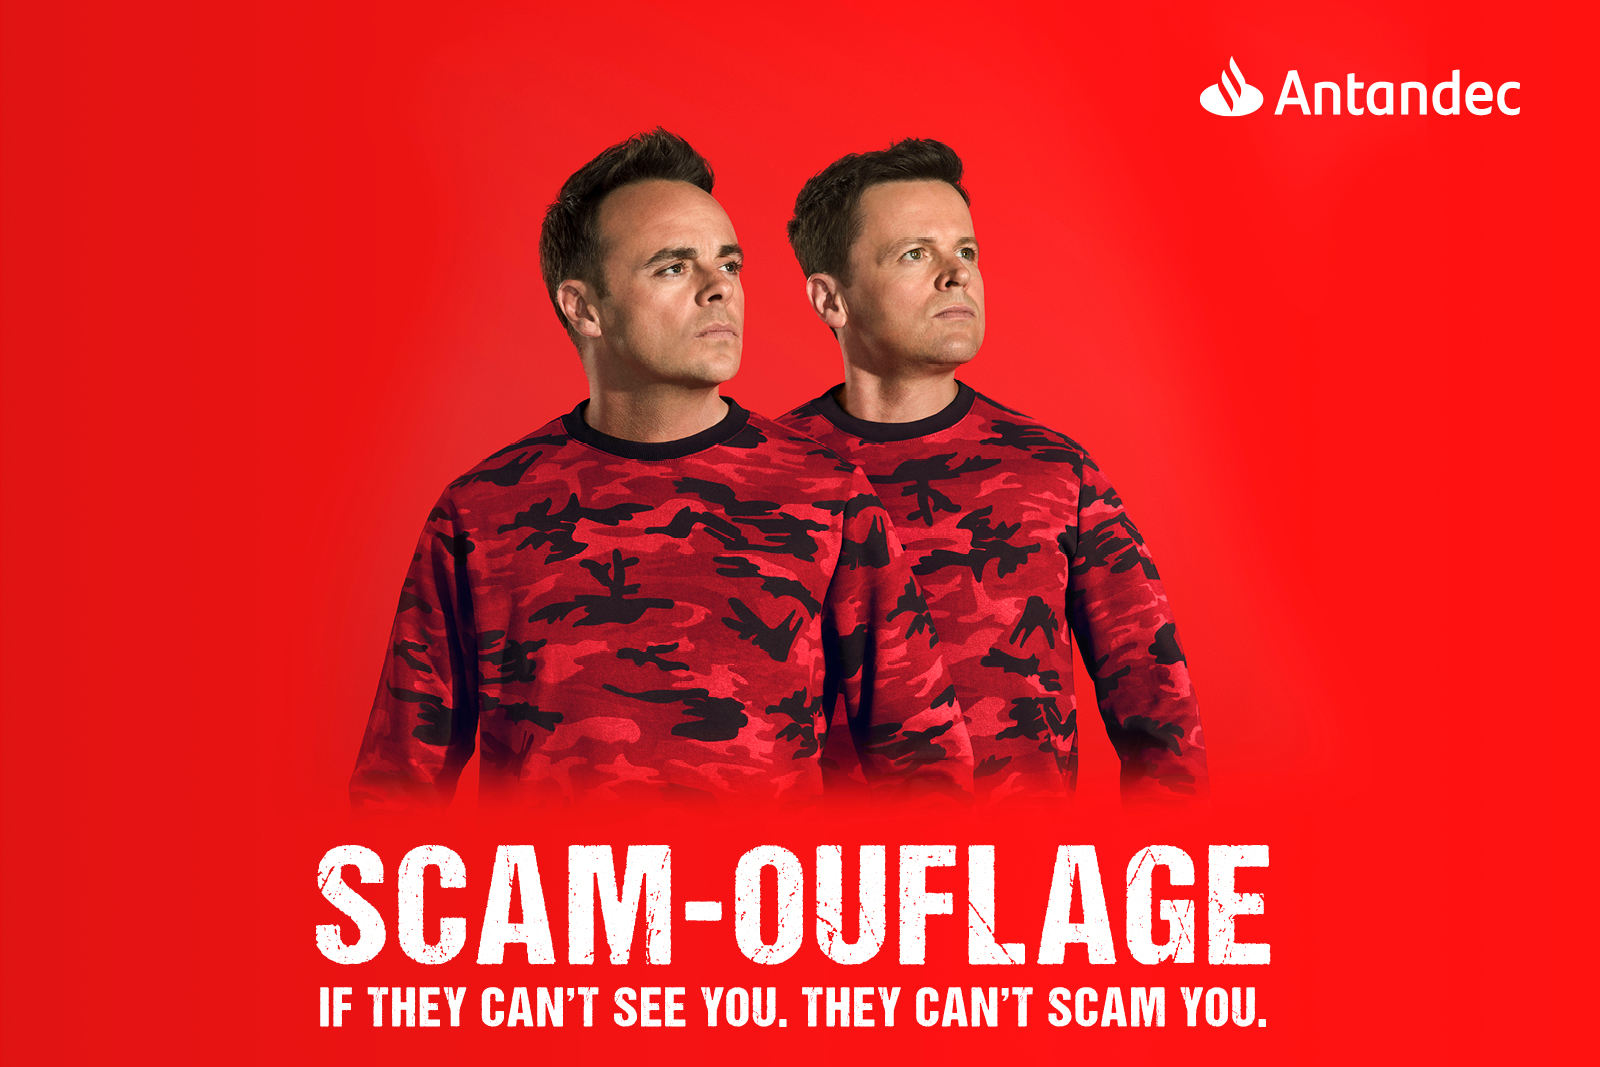 Scam-ouflage - If they can't see you. They can't scam you. Antandec Masthead